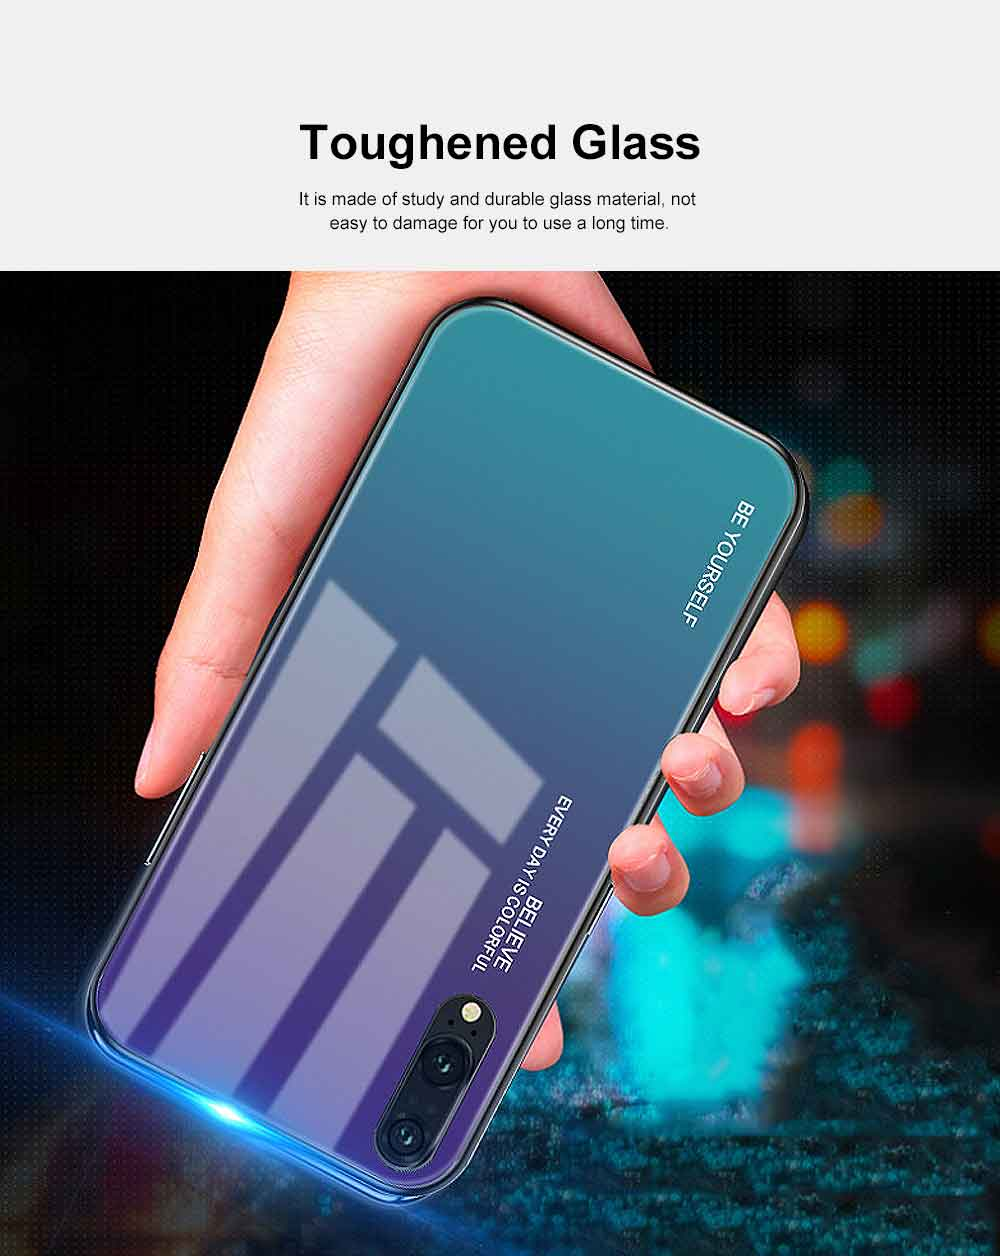 Gradient Phone Case for Huawei Nova 4, P20 Pro, P20 Lite, Explosion-proof and Scratch-resistant Case Cover with Toughened Glass and High-quality TPU 5